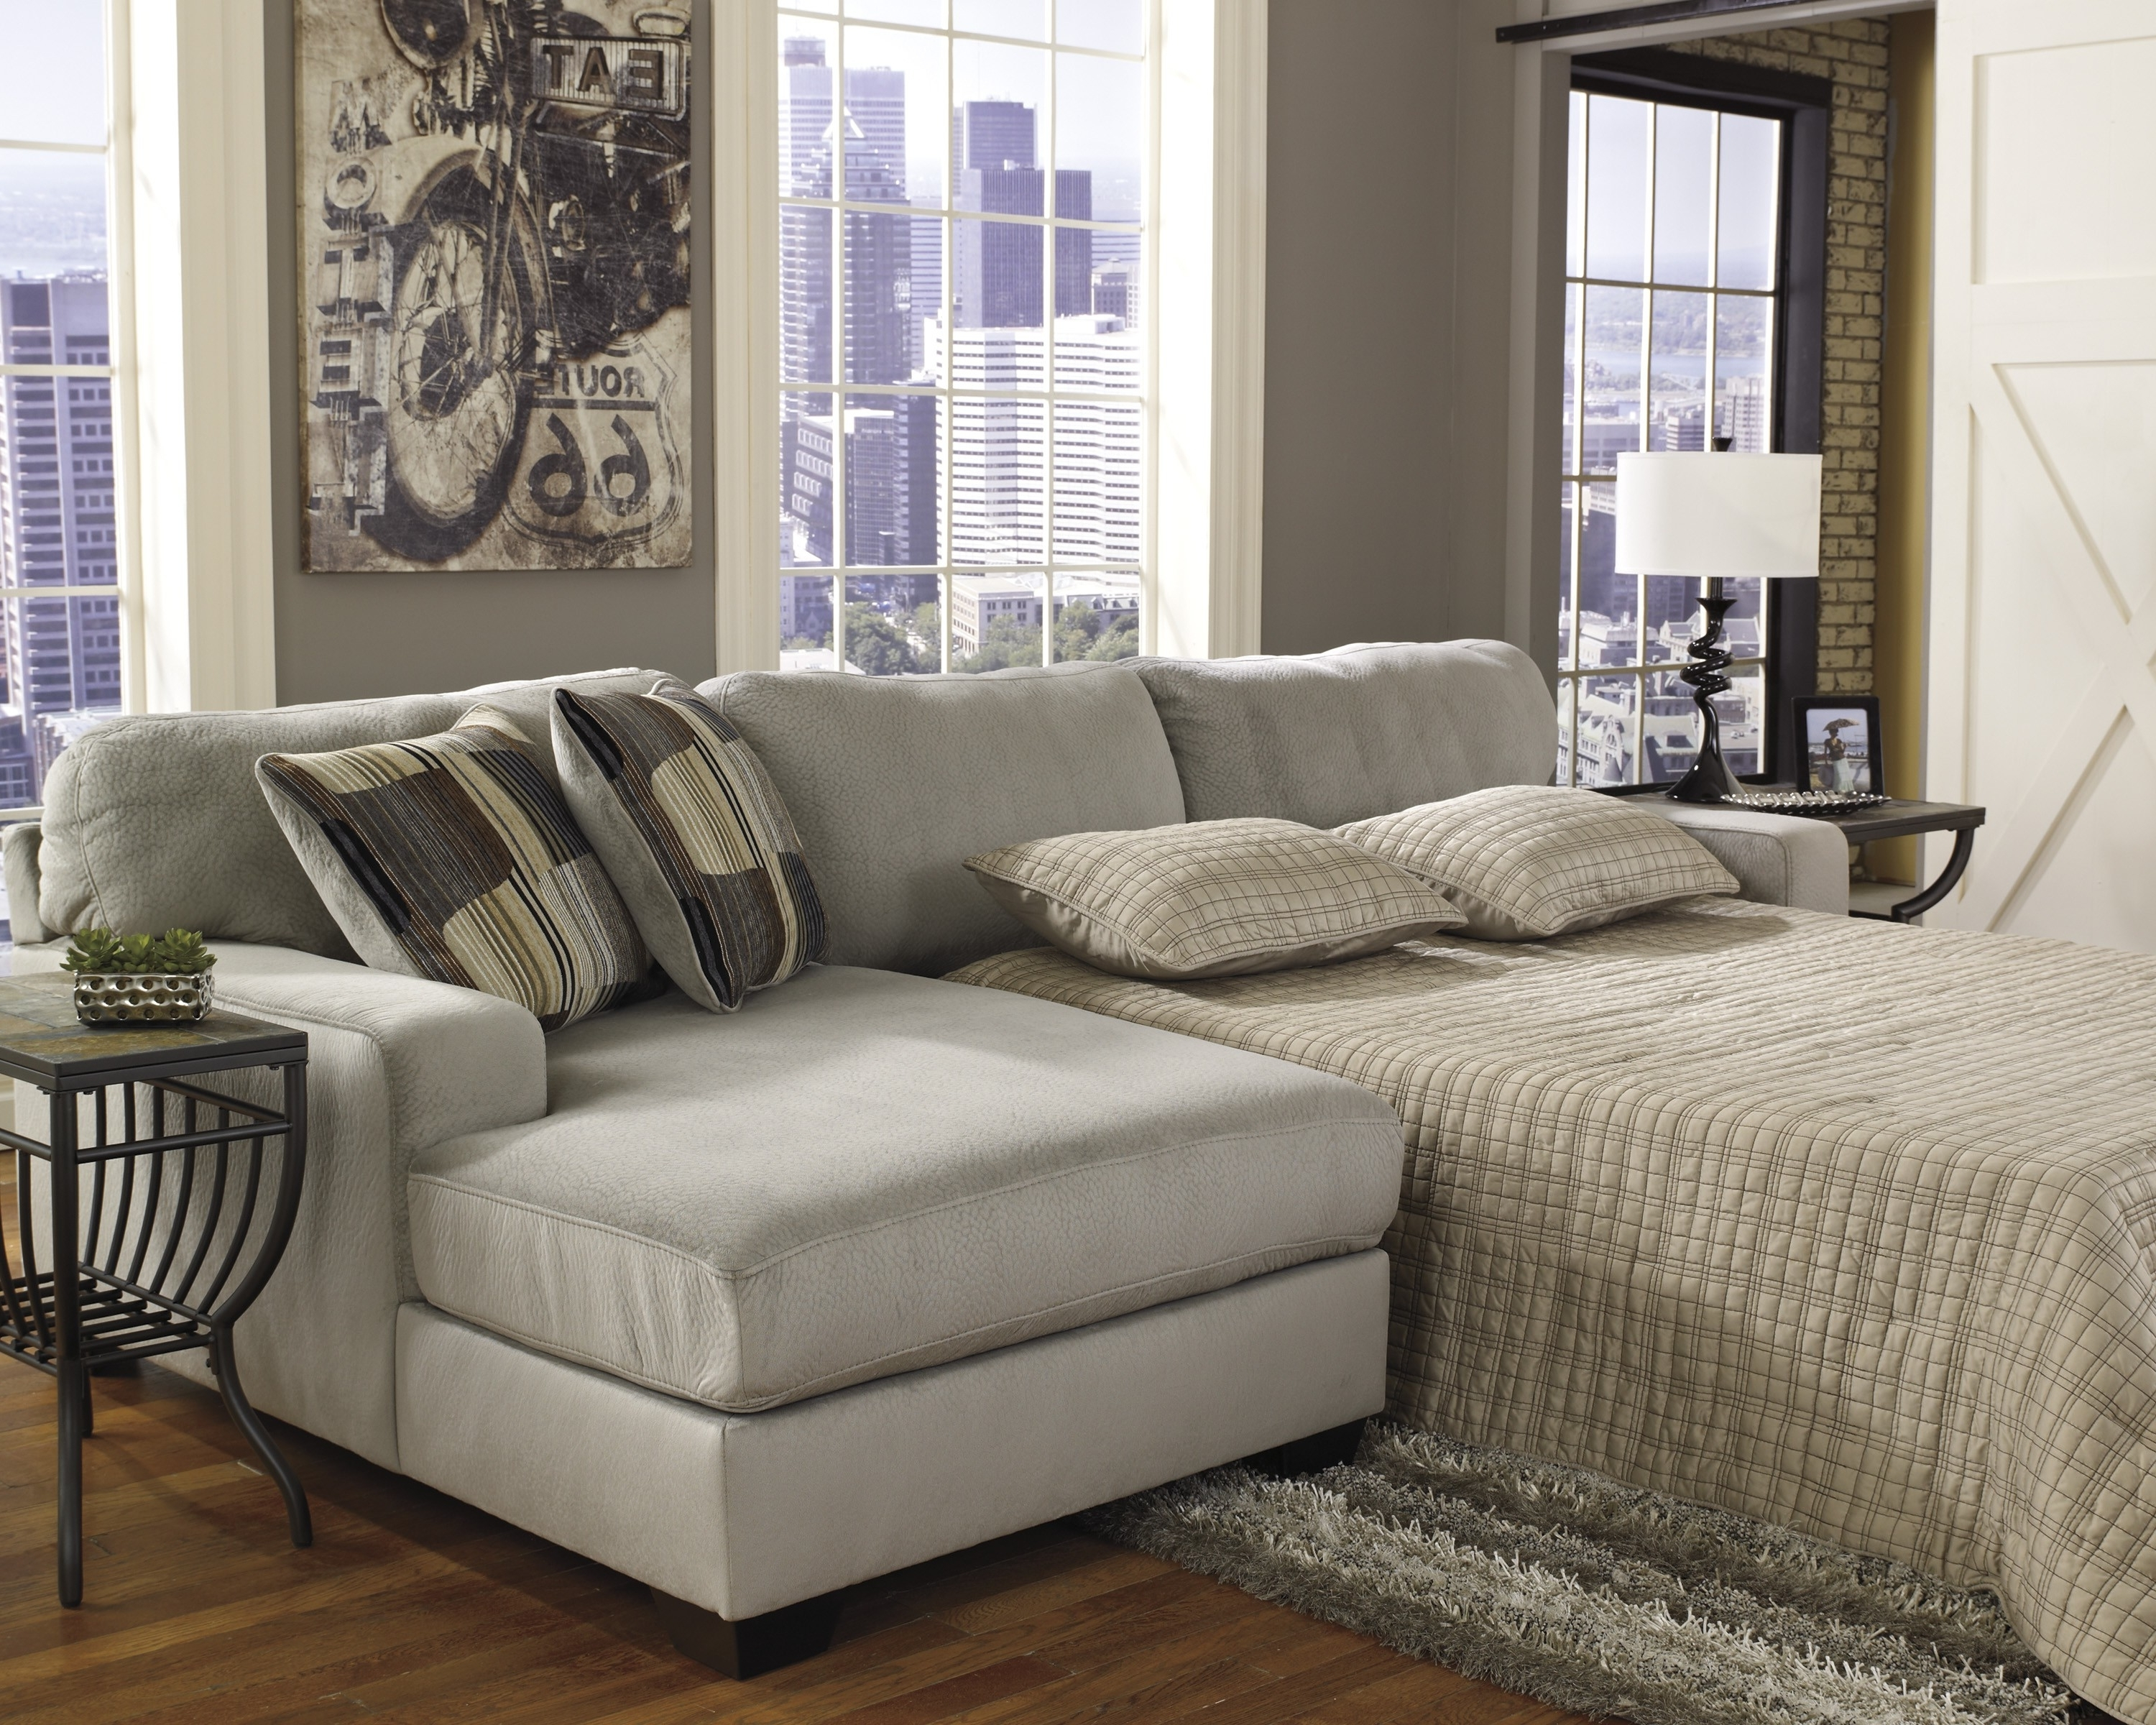 Favorite Astonishing Small Sleeper Sofa With Chaise 33 On West Elm Henry For West Elm Chaises (View 5 of 15)